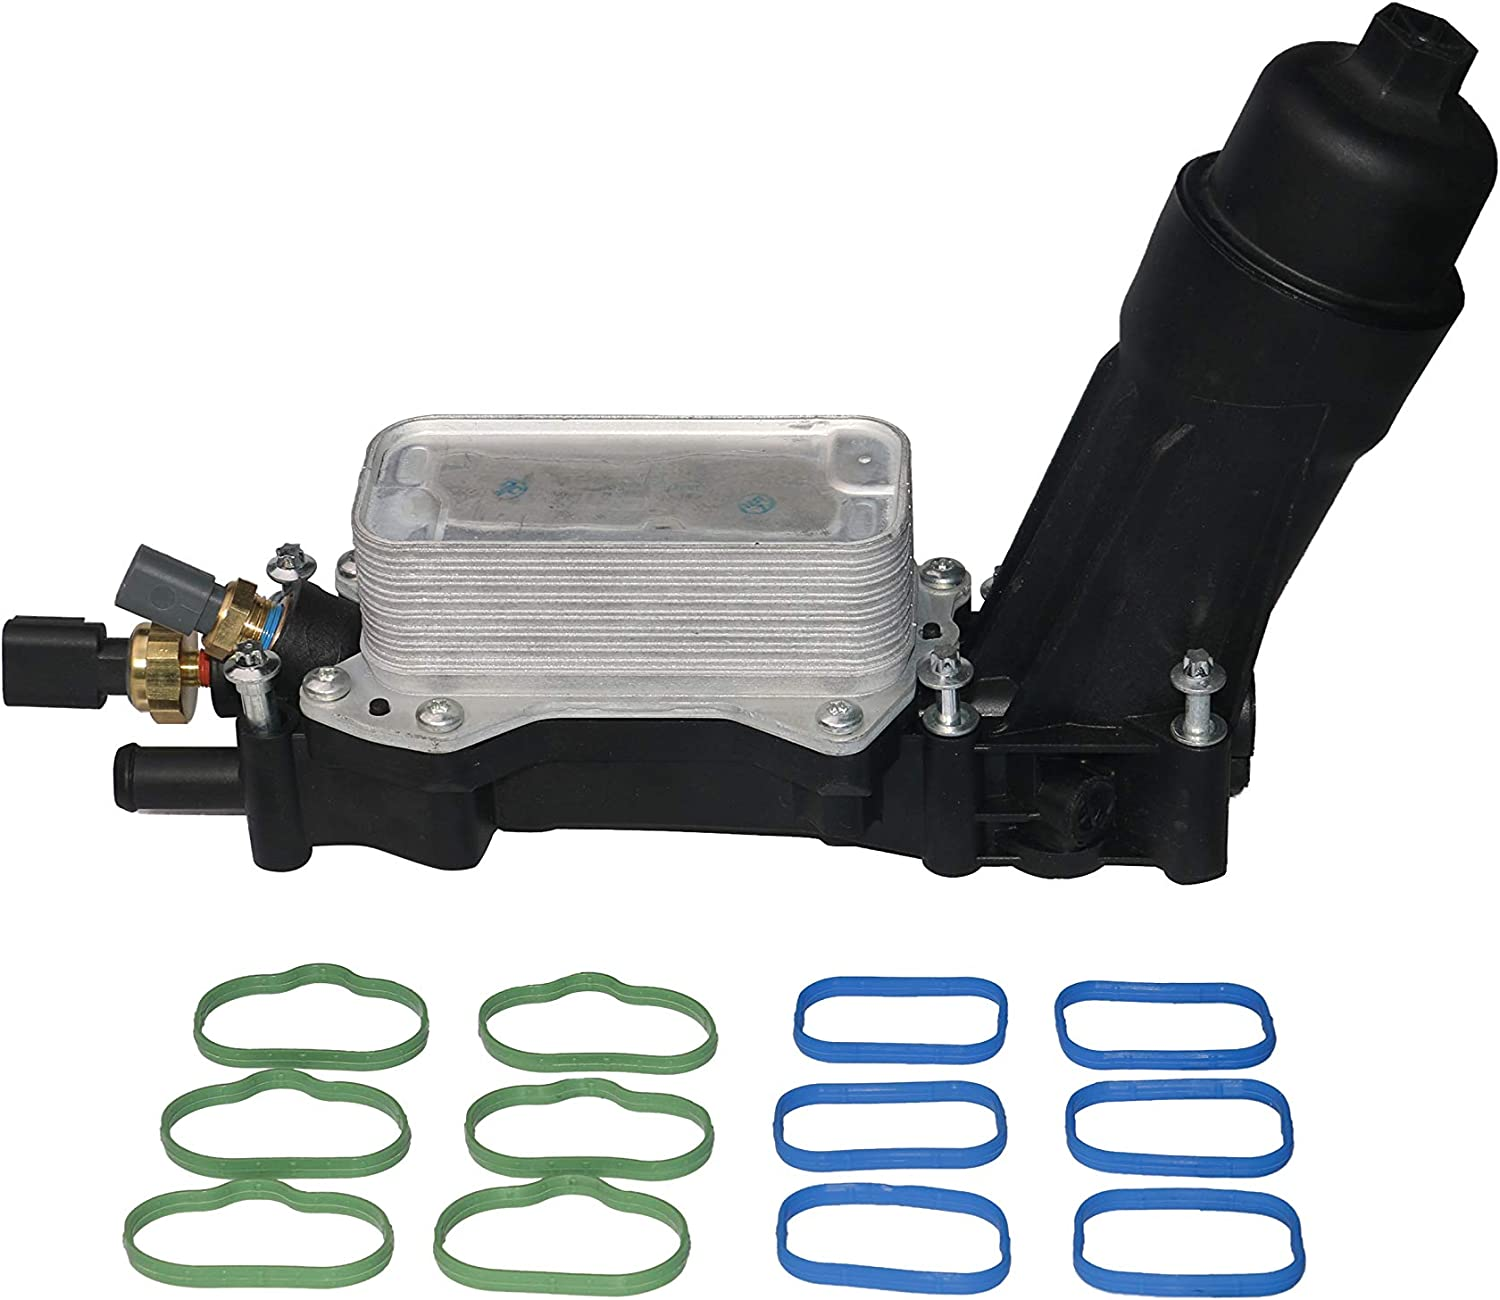 Engine Oil Cooler and Filter Housing Adapter Kit - Replaces 68105583AF, 68105583AE - Fits 3.6L V6 Chrysler 200, Town & Country, Dodge Grand Caravan, Jeep Grand Cherokee, Wrangler, Ram 1500, 2500